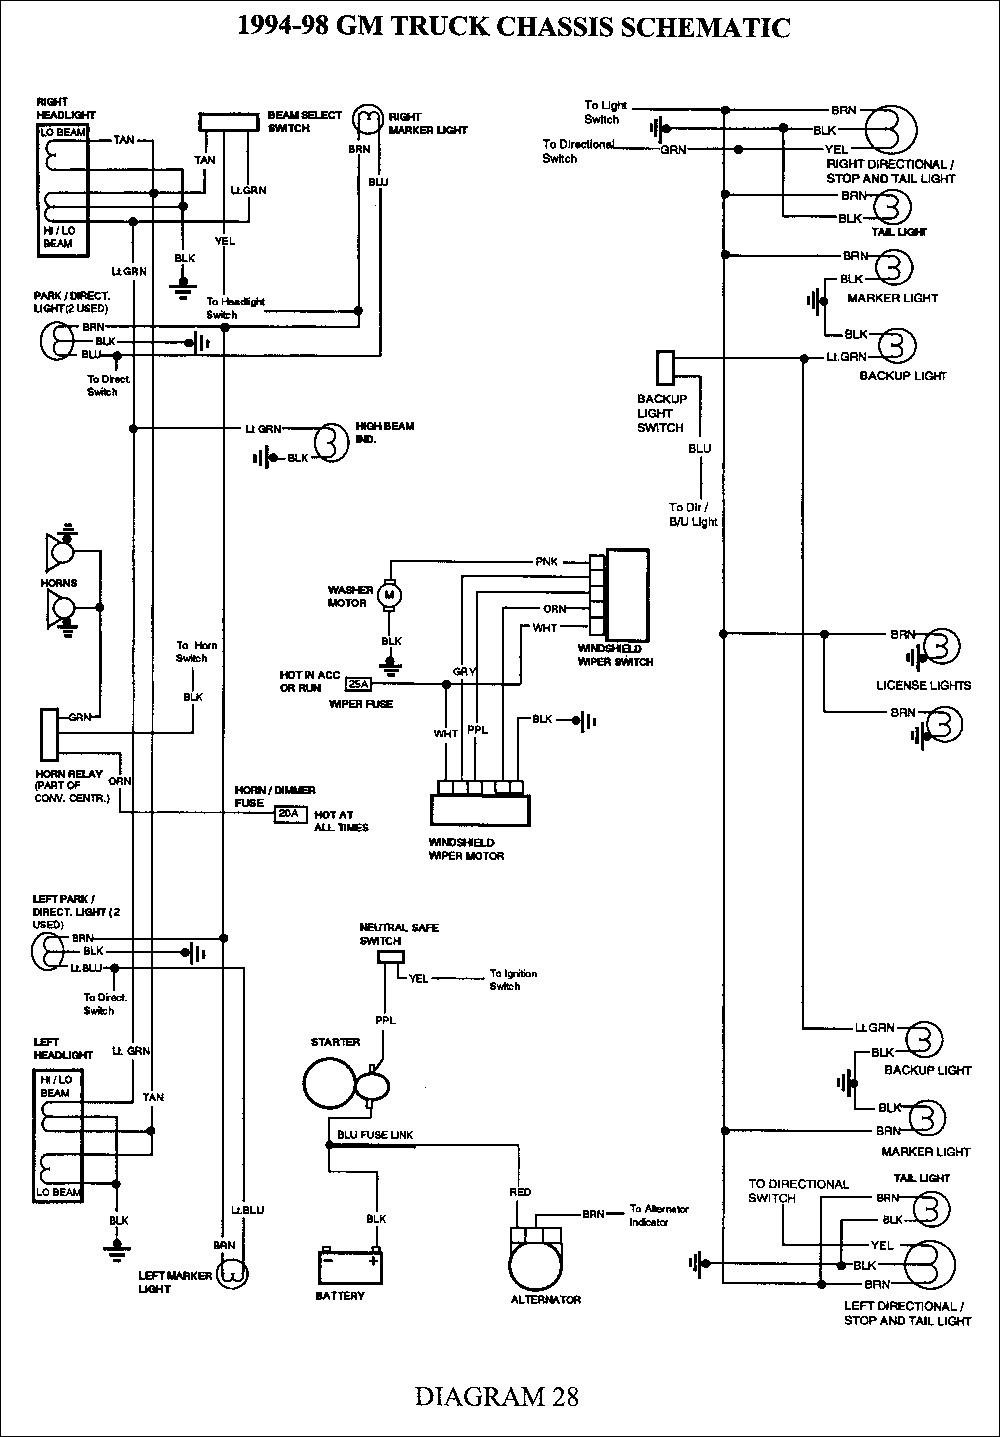 2000 Saturn Alternator Wiring Diagram Free Download Smart Schematic 84 F250 Custom U2022 Rh Littlewaves Co Sl Engine 2003 L200